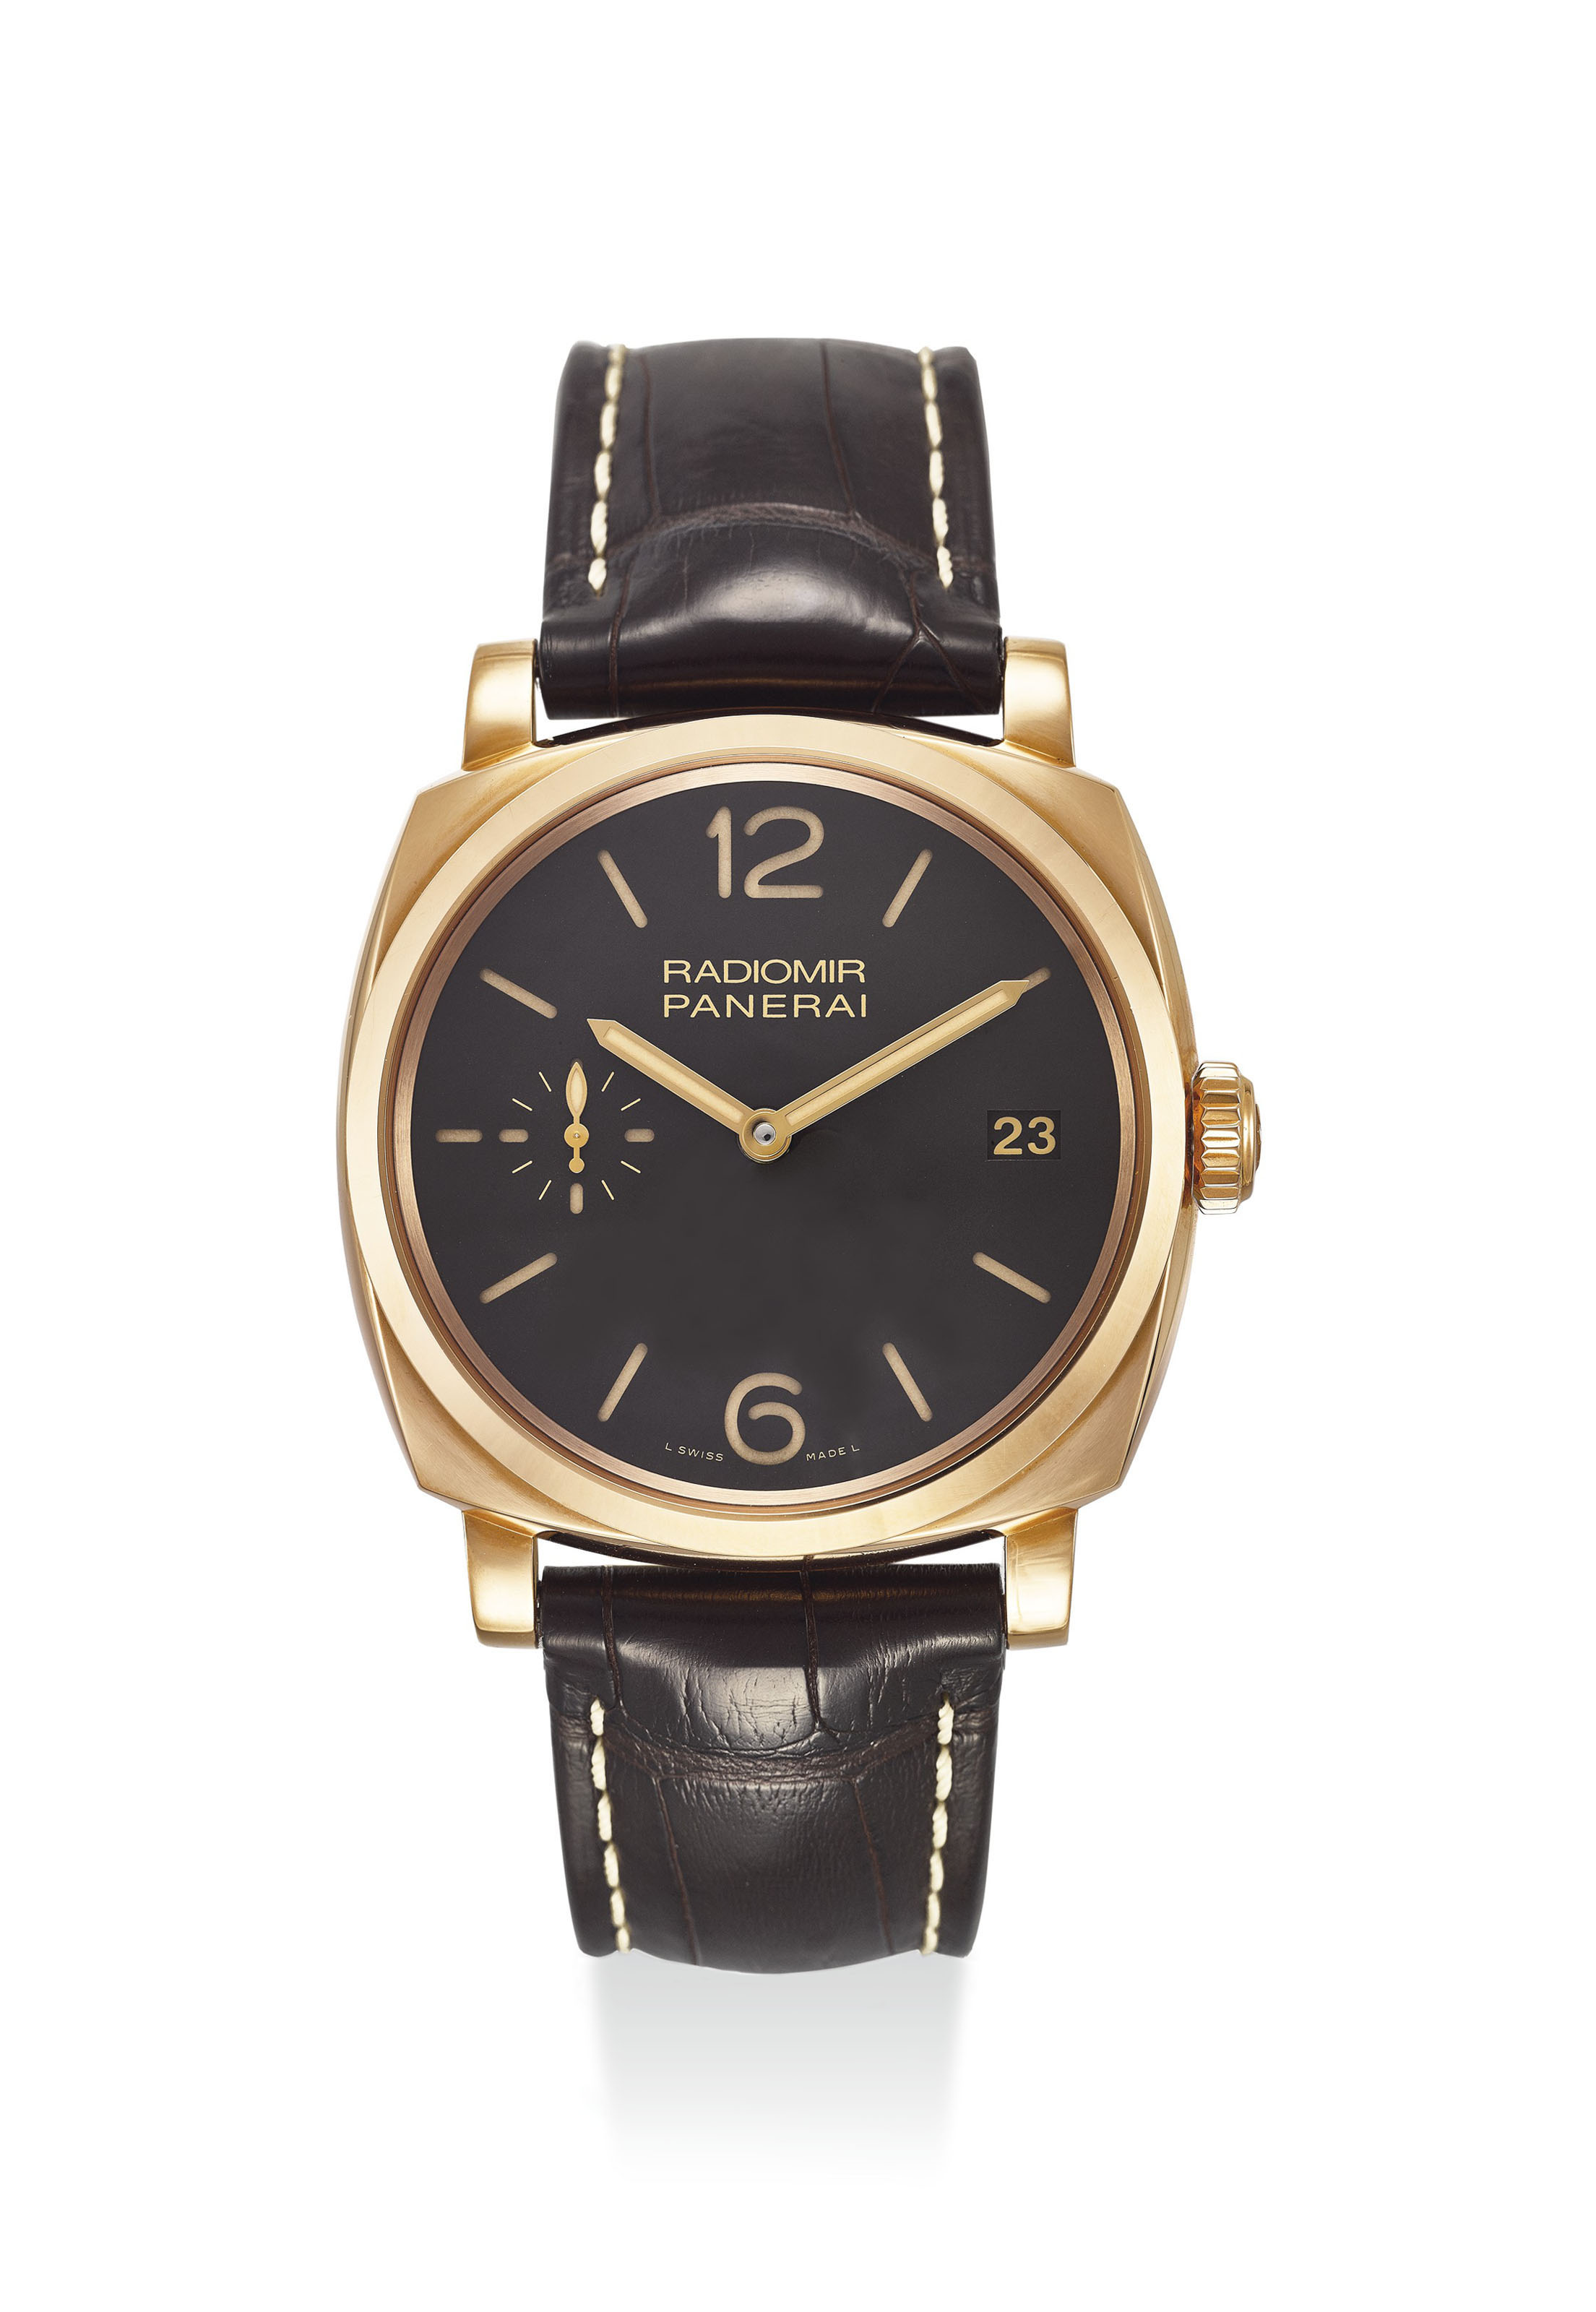 PANERAI AN EXTREMELY FINE